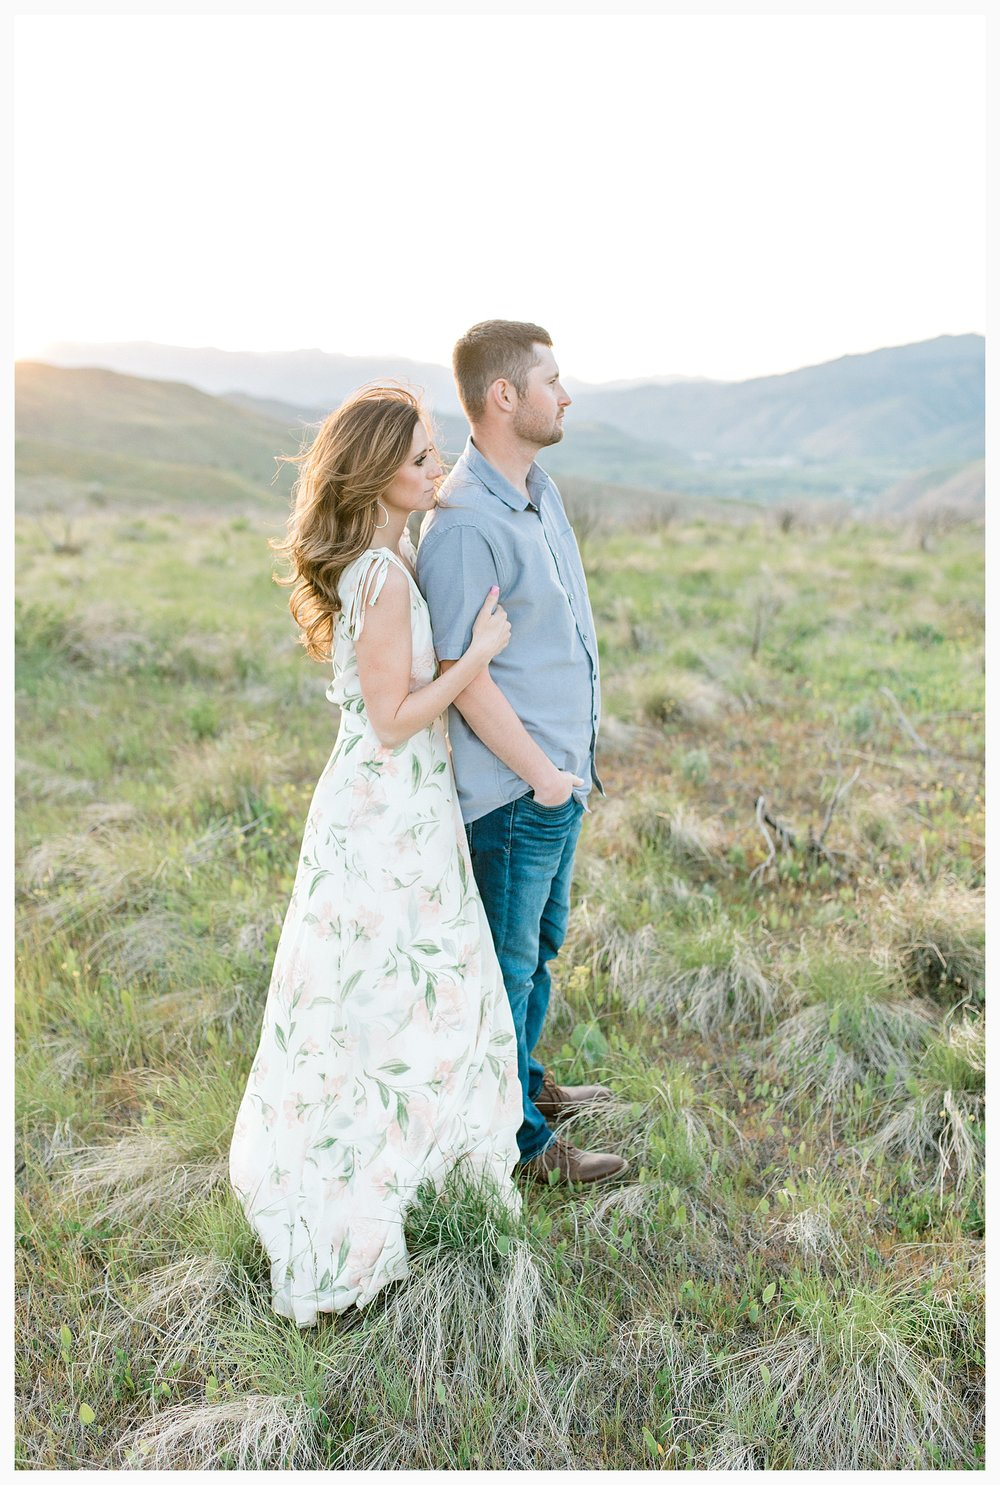 Engagement session amongst the wildflowers in Wenatchee, Washington | Engagement Session Outfit Inspiration for Wedding Photography with Emma Rose Company | Light and Airy PNW Photographer, Seattle Bride_0033.jpg